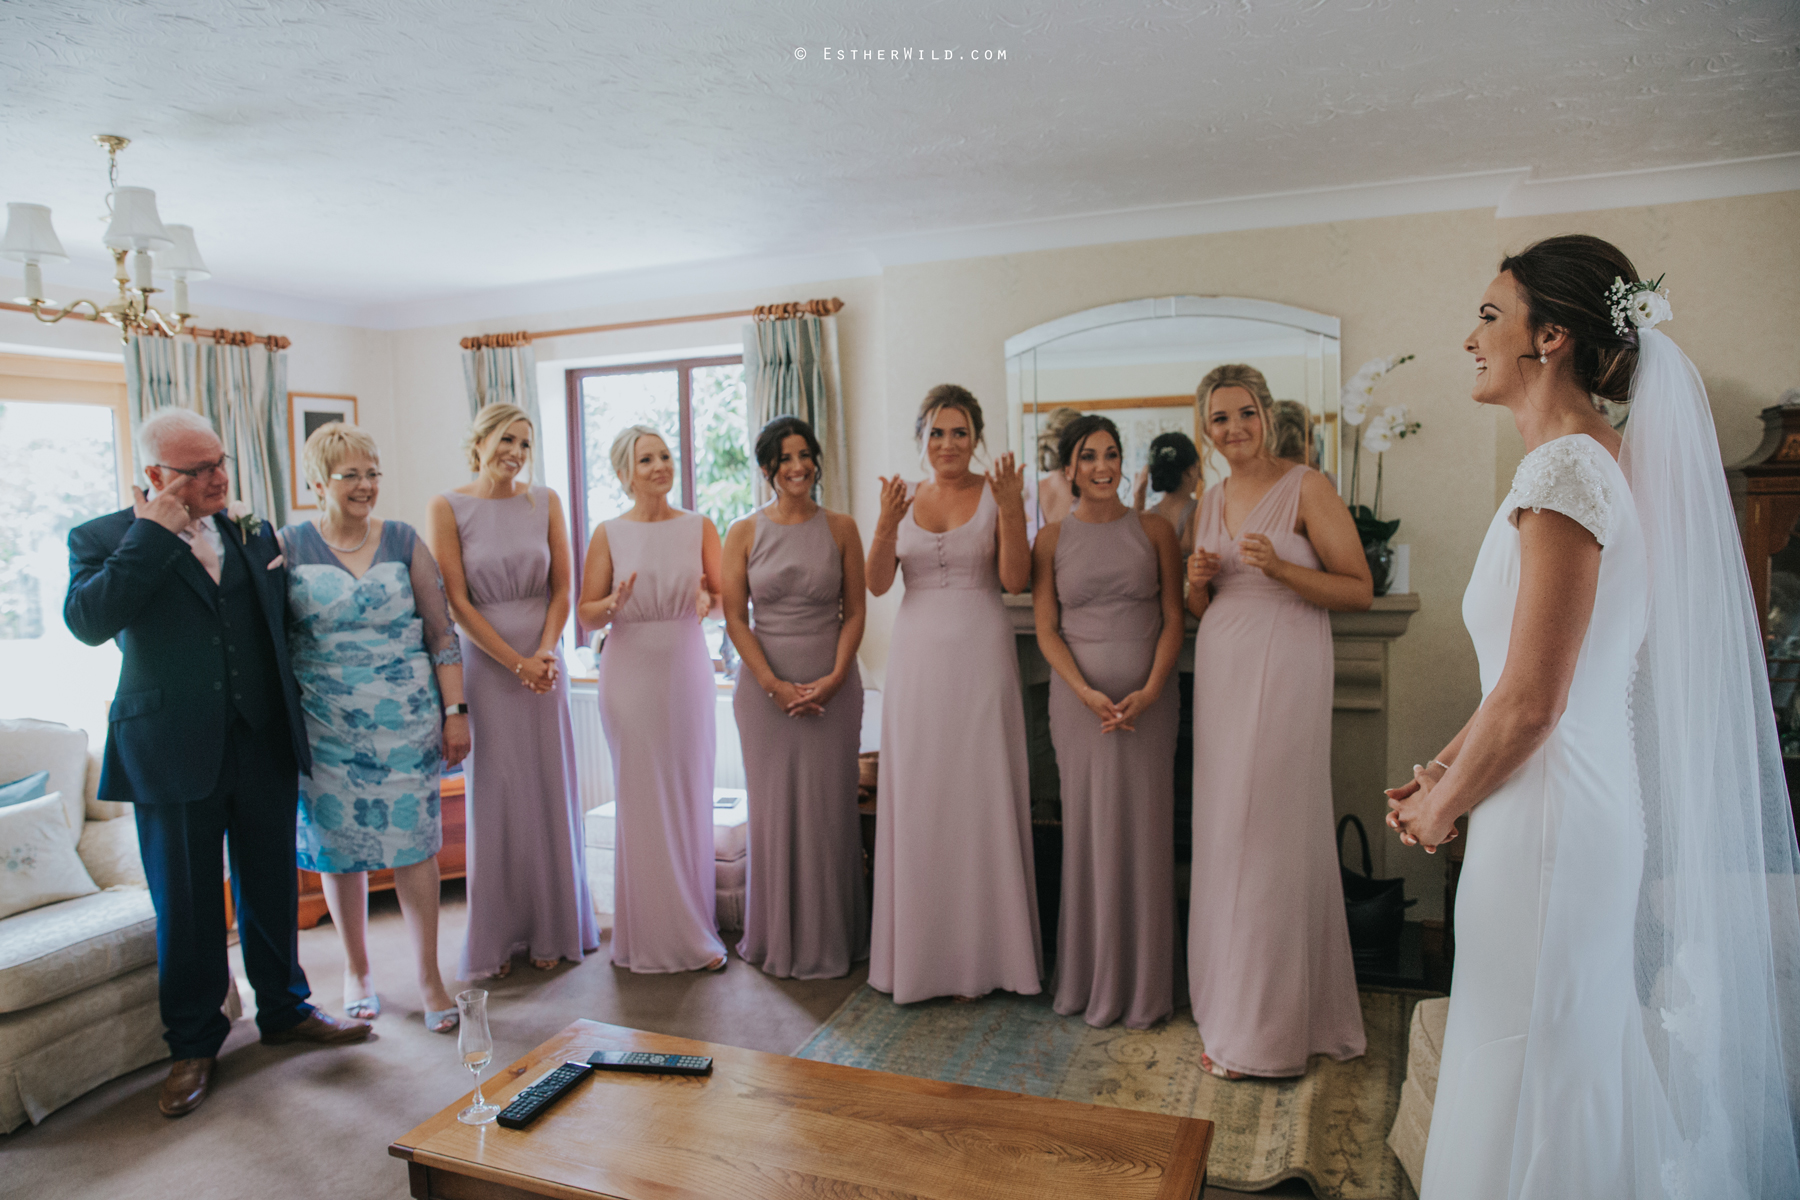 Wootton_Wedding_Copyright_Esther_Wild_Photographer_IMG_0598.jpg